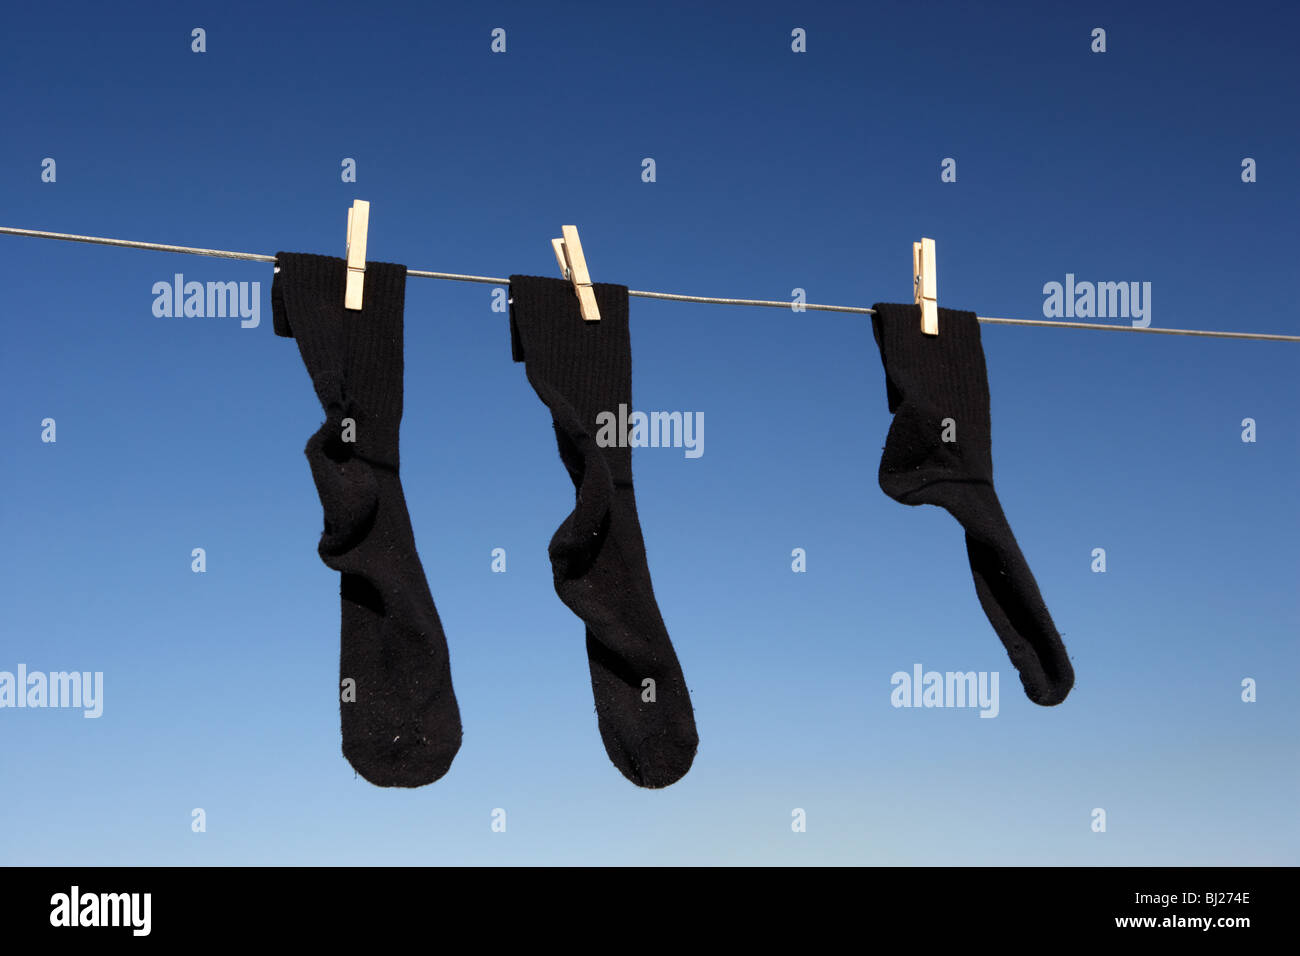 pair of black socks and an odd one hanging on a washing line with blue sky - Stock Image